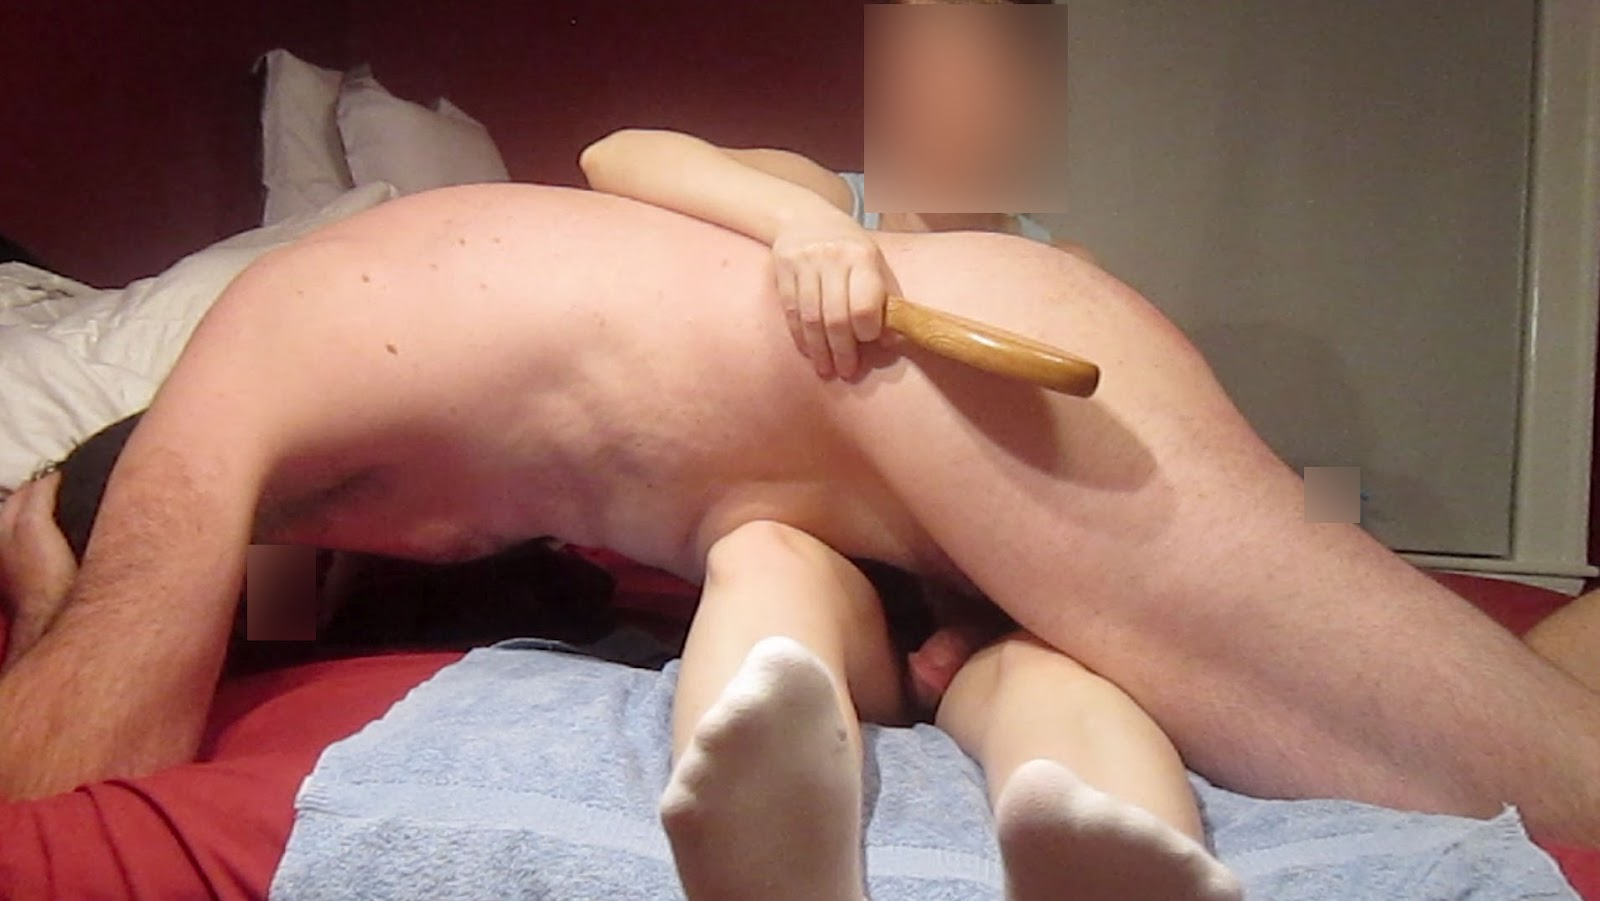 Spanking my husband for missing a spot